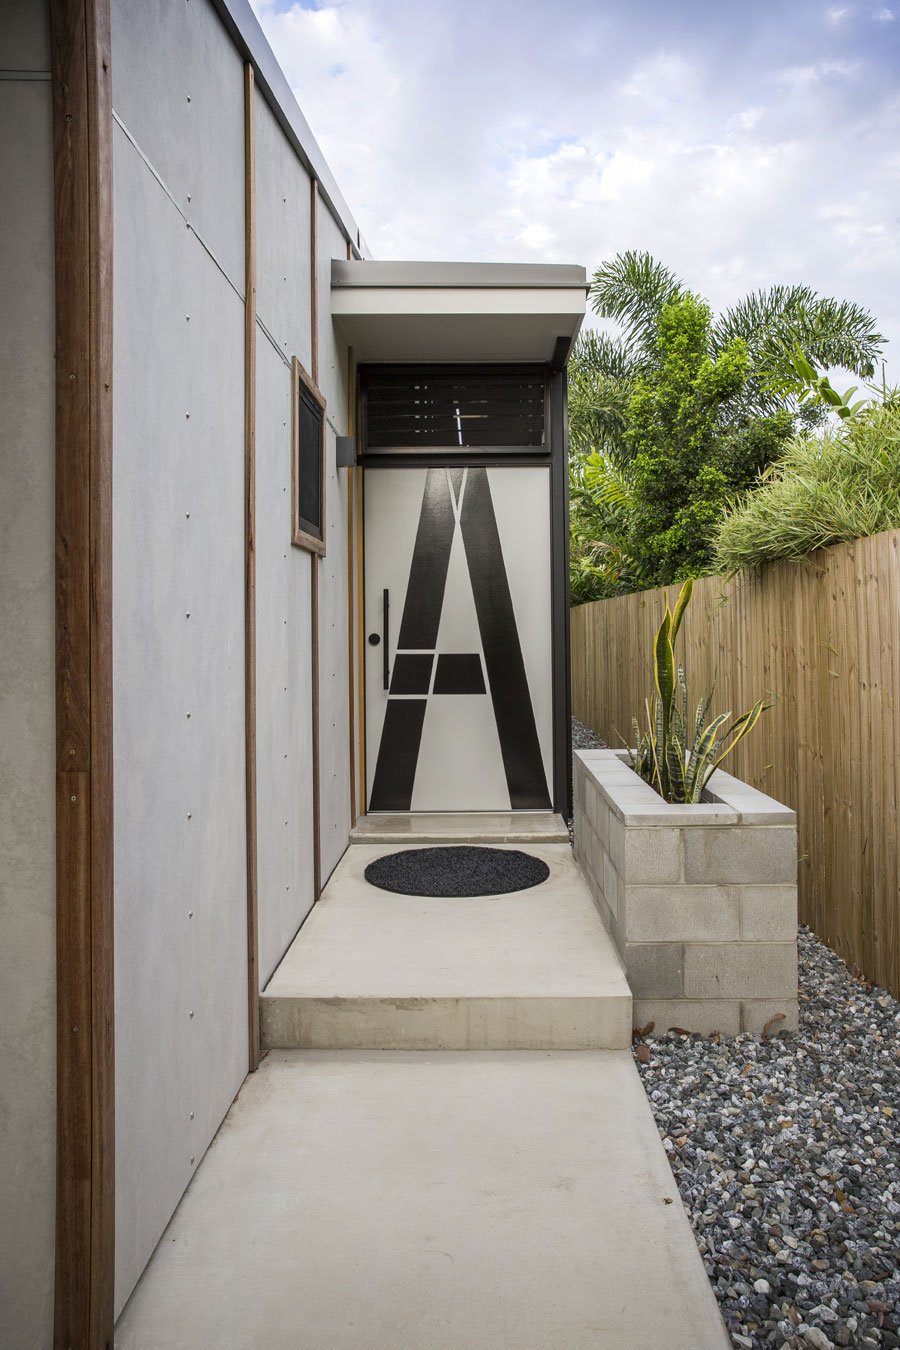 The side entry of Laneway house in Townsville unlocks the narrow floor plan and addresses its laneway condition.